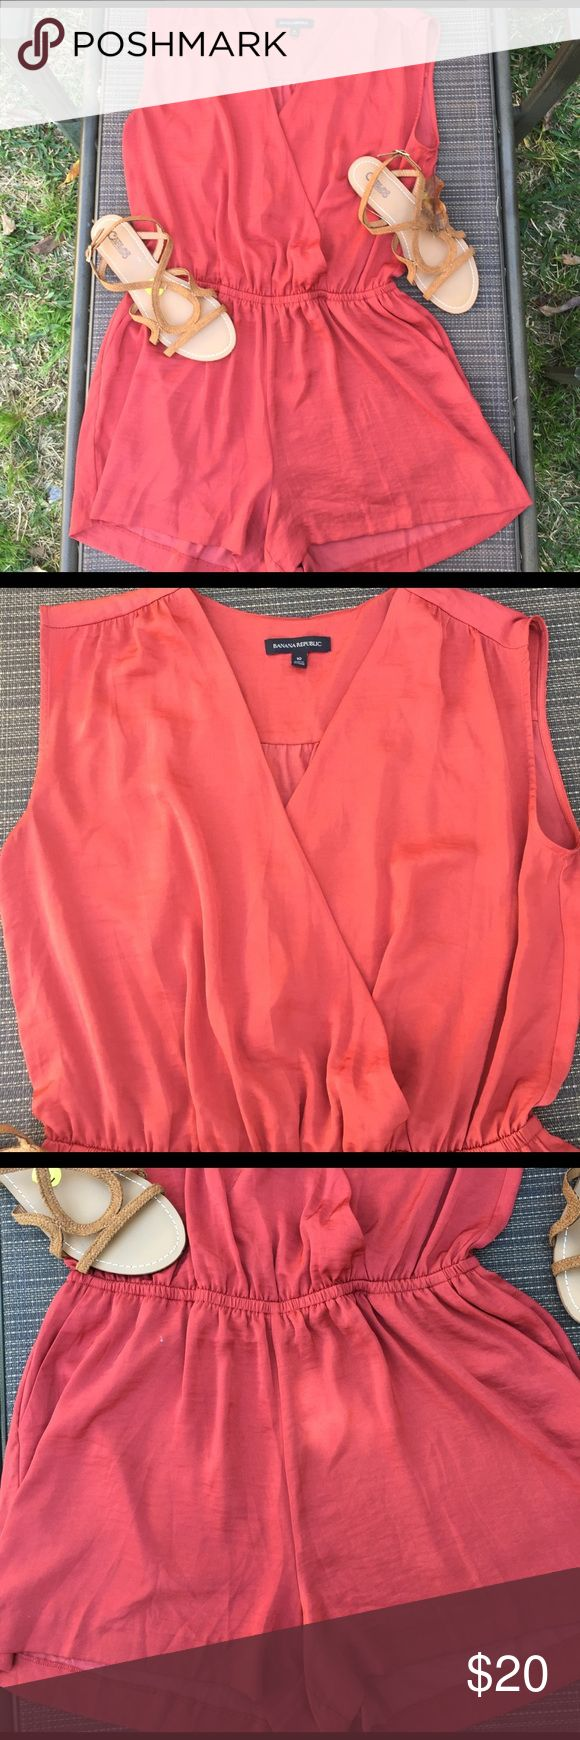 Women's Banana Republic Short Rumper Size 10 Pre Owned Great condition with pockets Banana Republic Shorts